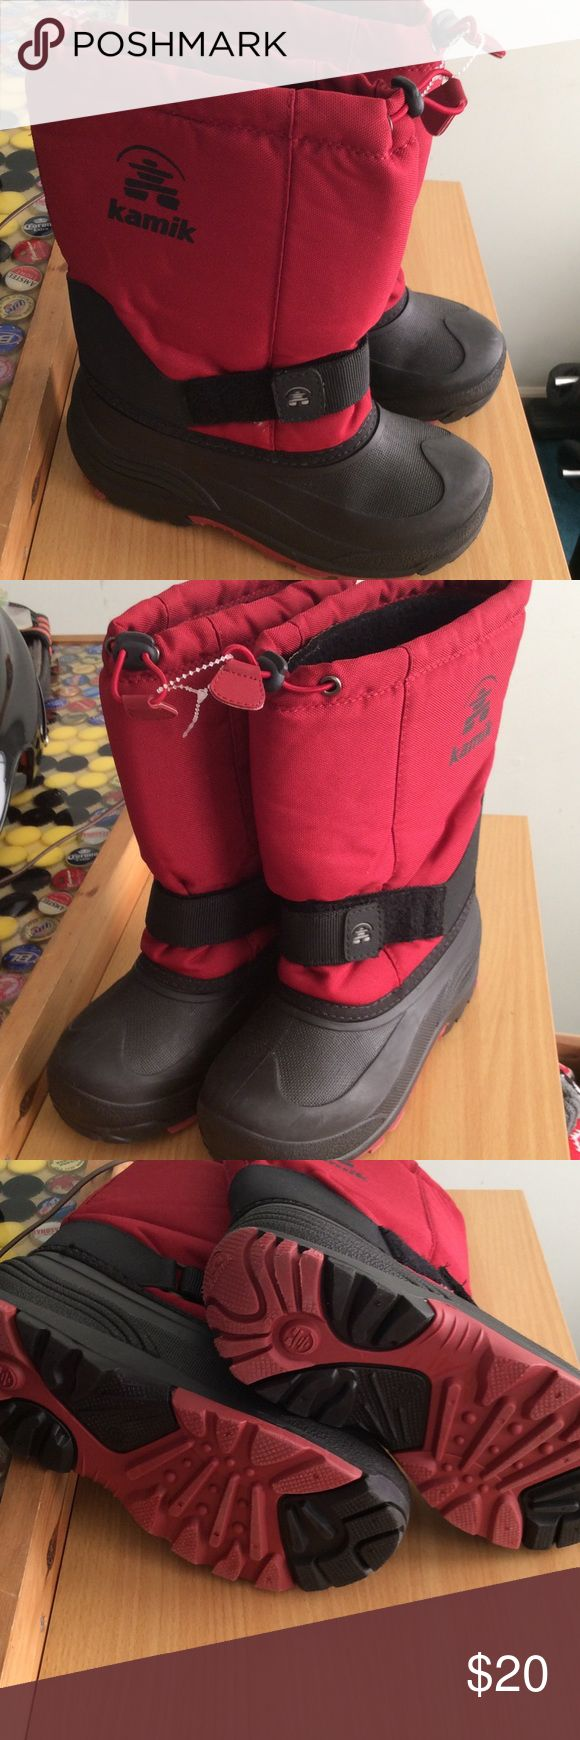 New Kamik winter boots size 3 New condition, Kamik size 3,. Boy. length is 9 1/2 inches Kamik Shoes Rain & Snow Boots